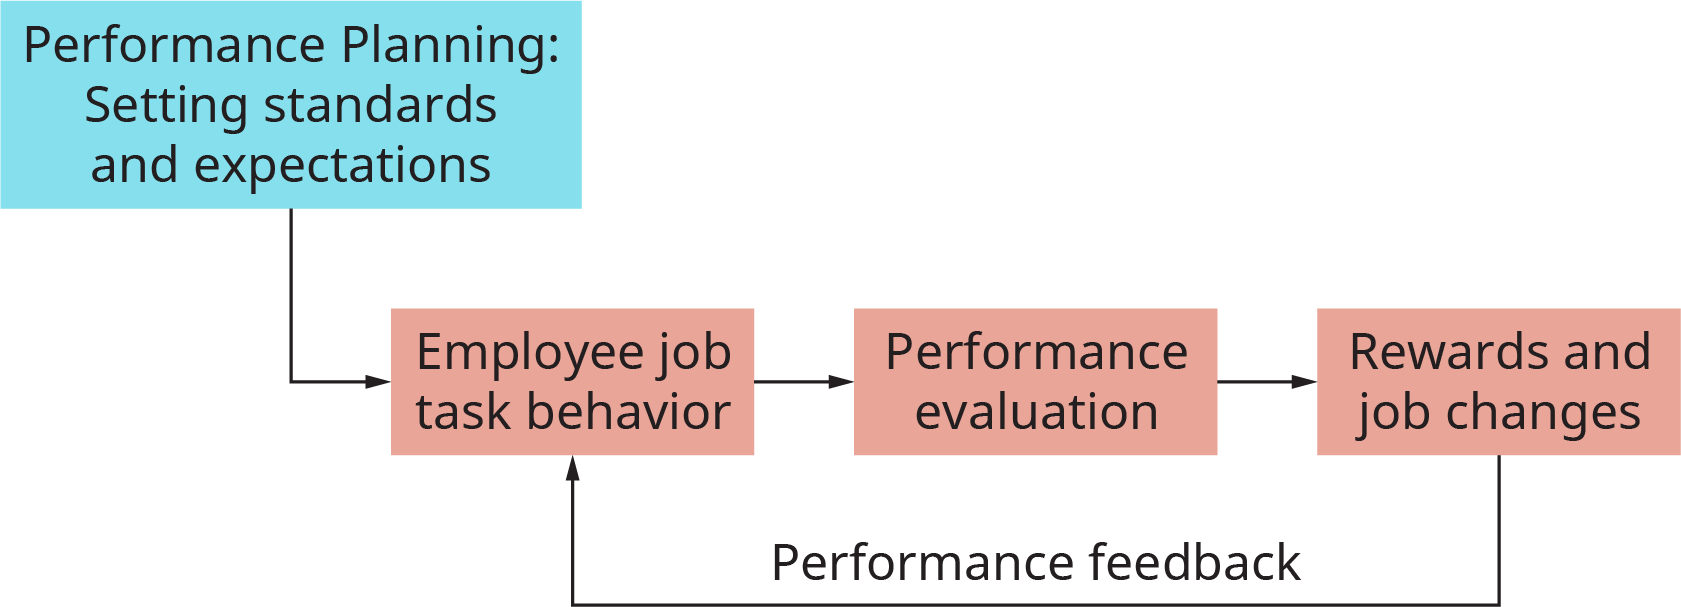 The chart starts with a box labeled performance planning; setting standards and expectations. This flows into employee job task behavior. This flows into performance evaluation. This flows into rewards and job changes. From here, the process flows back to employee job task behavior, and is labeled performance feedback.